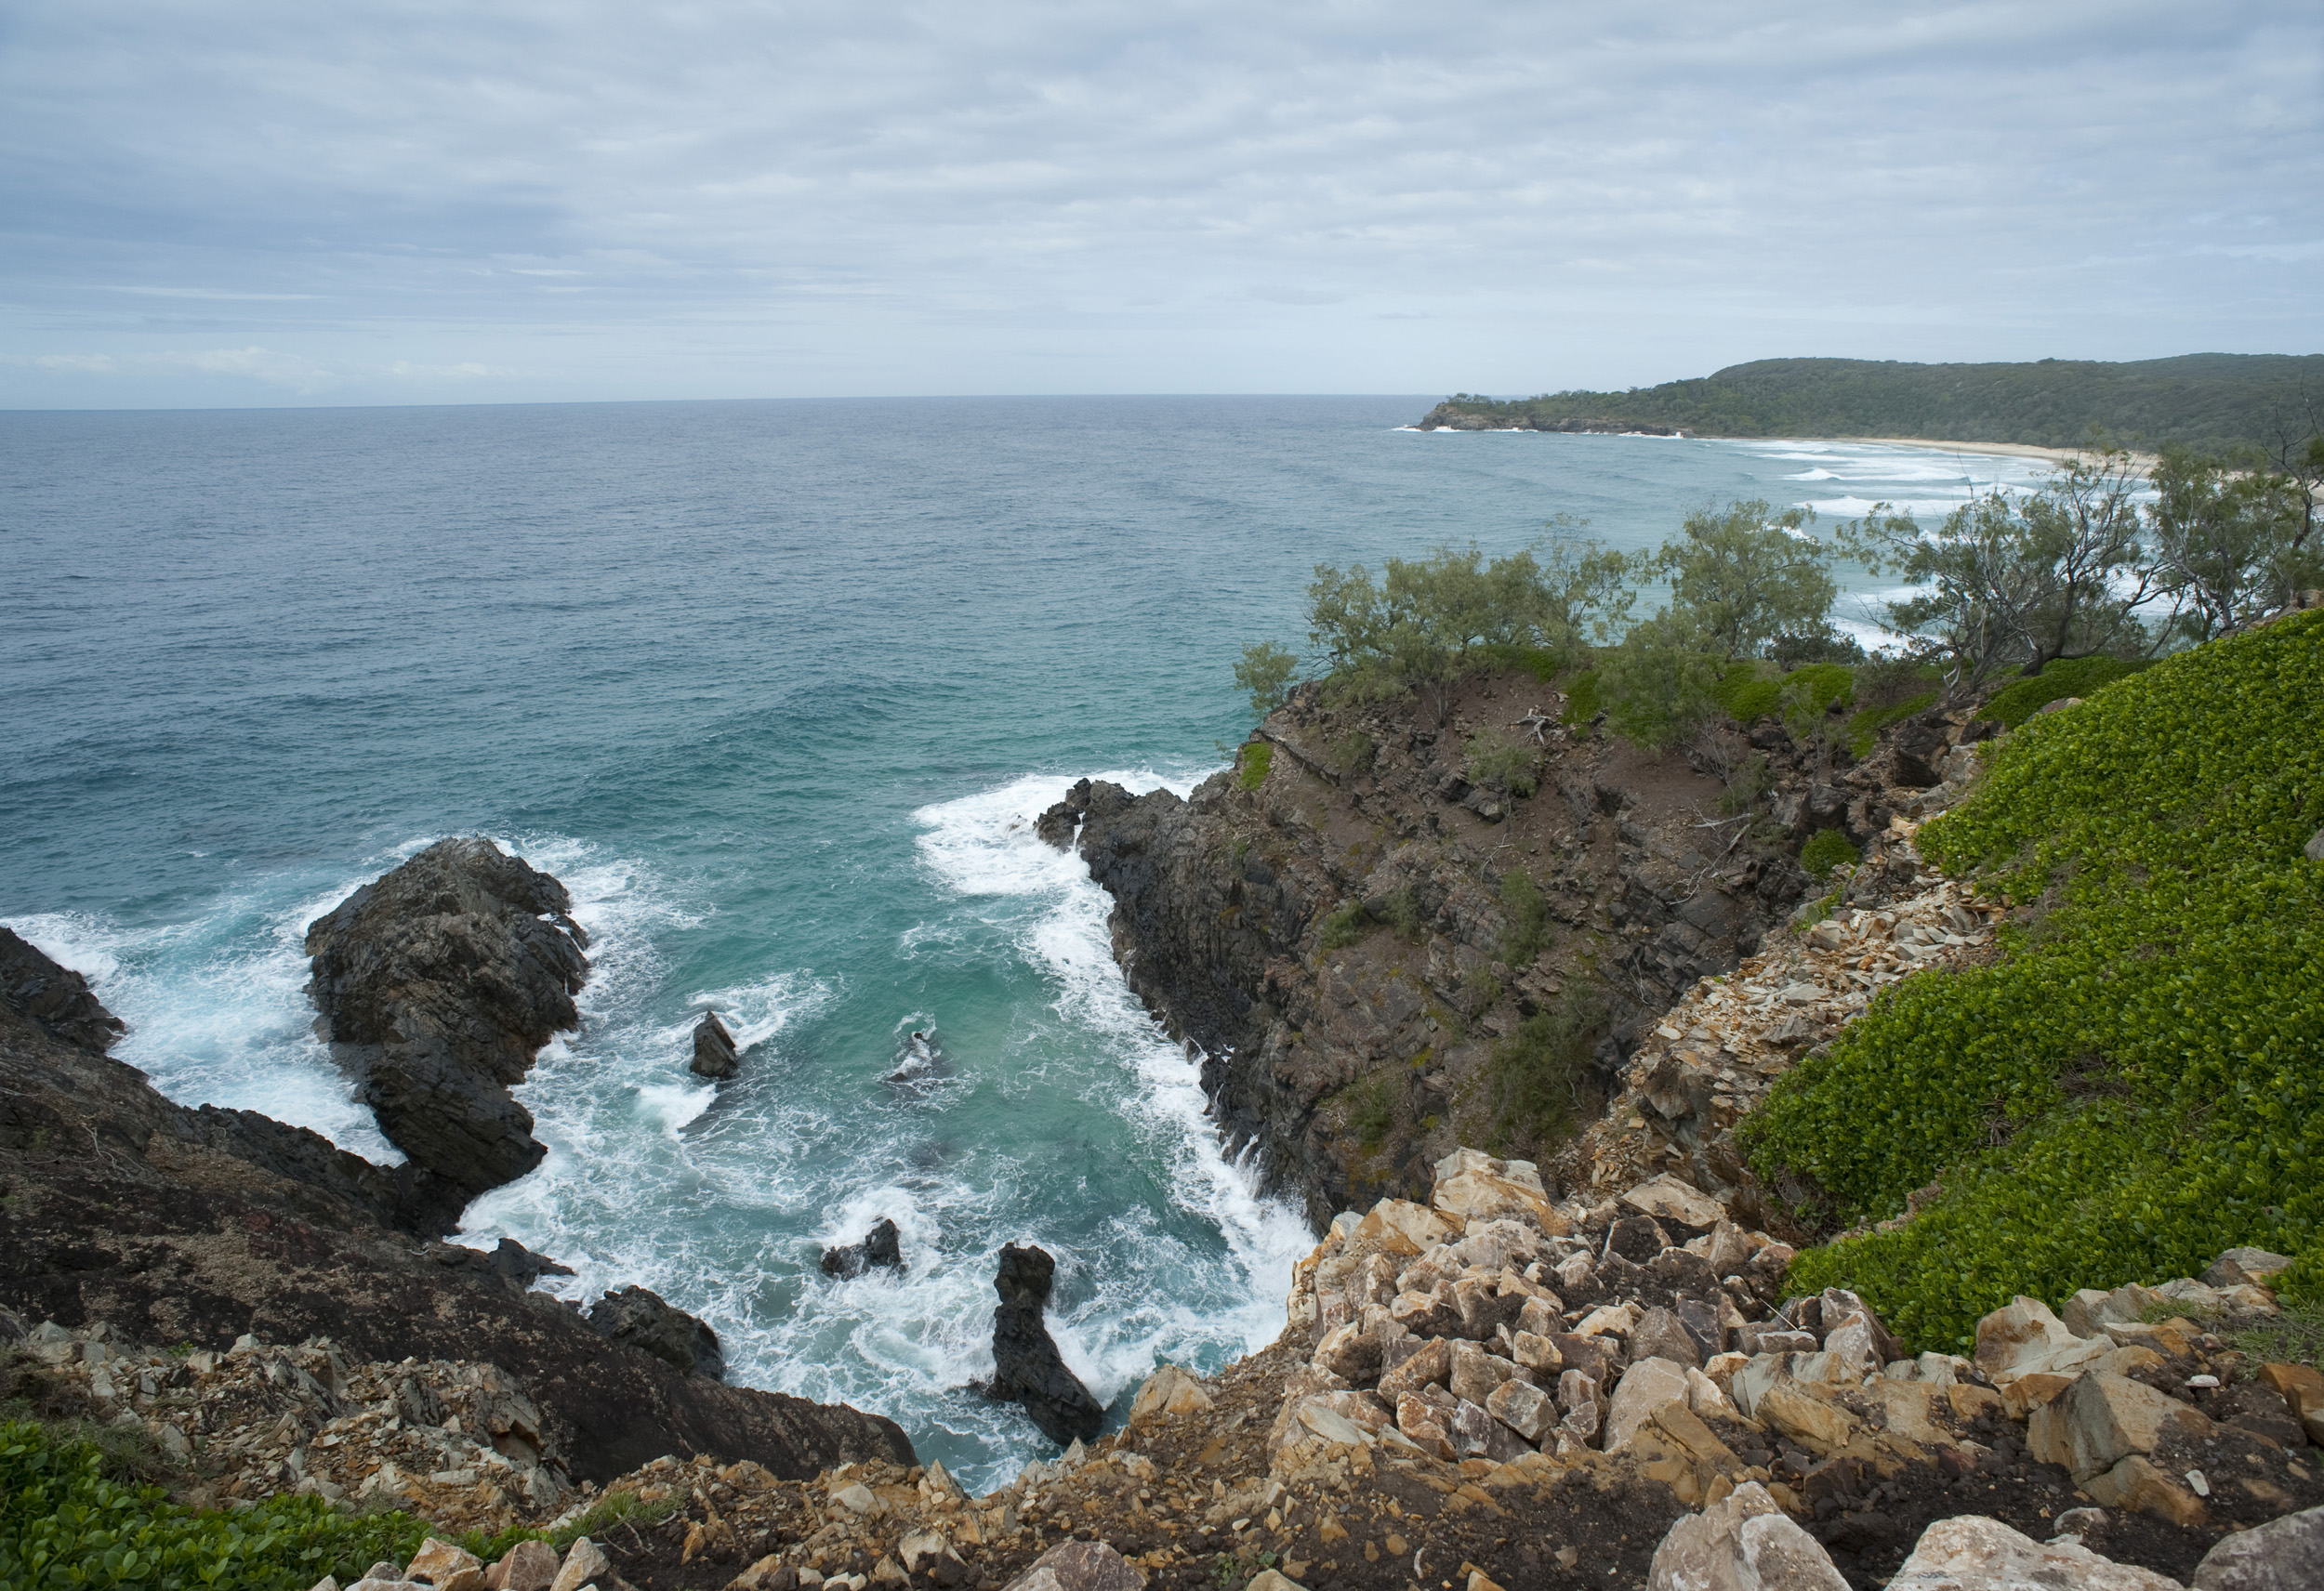 Hells Gates, an area of turbulent white water and rapids, and Alexandria Bay, Noosa in Queensland Australia